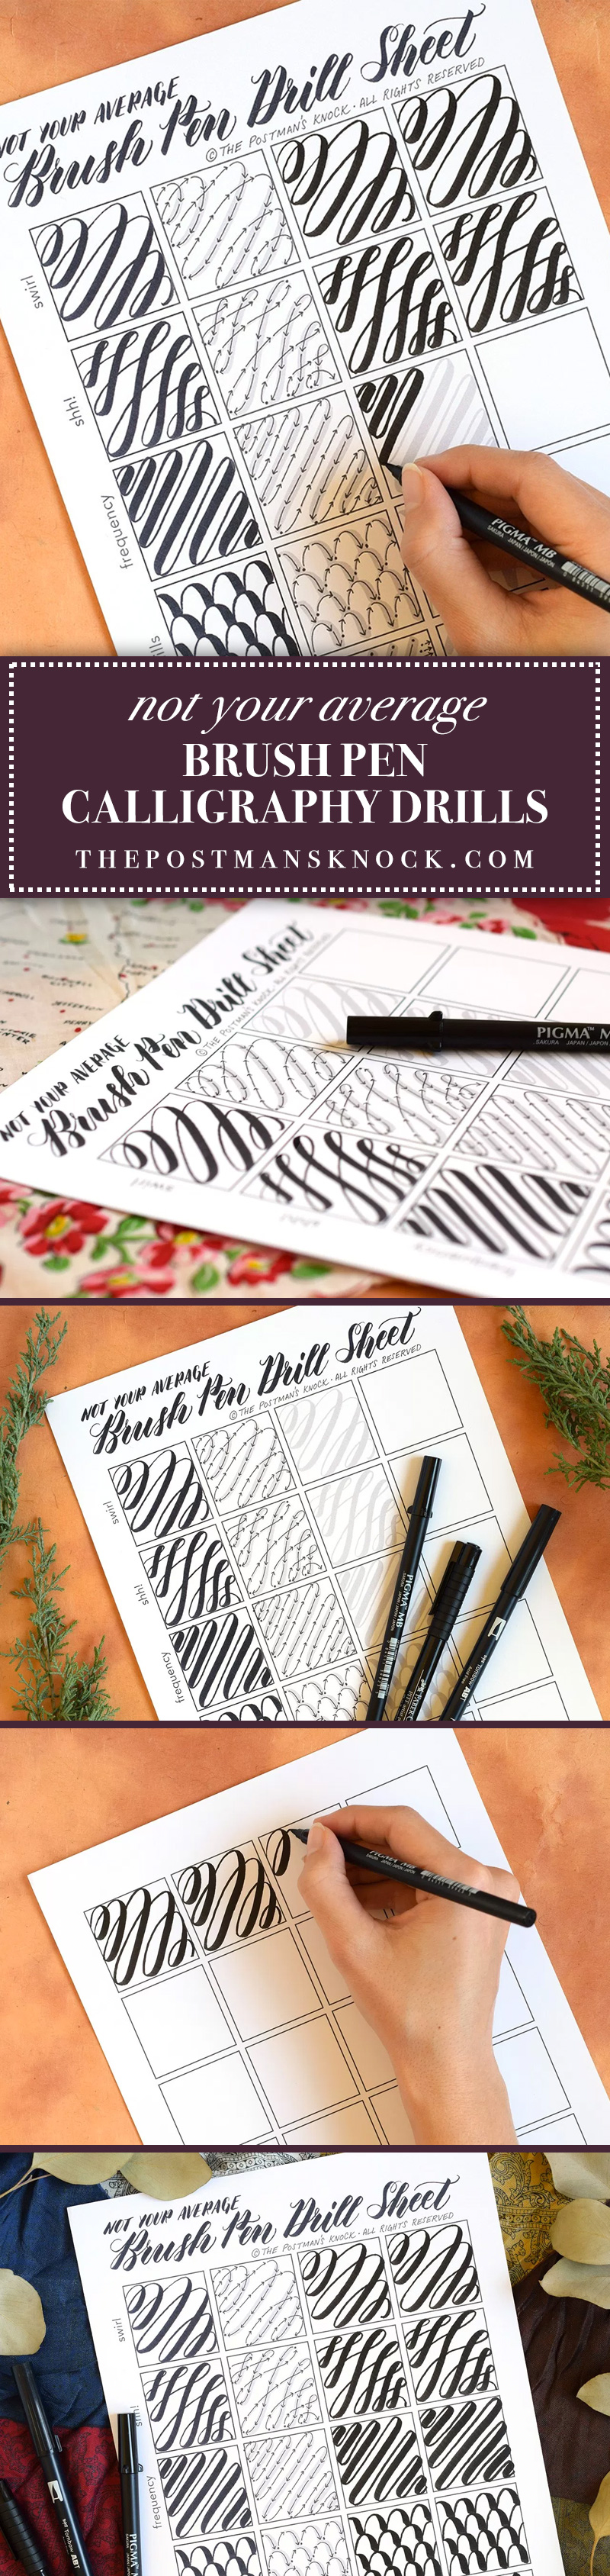 Not your average brush pen calligraphy drills the